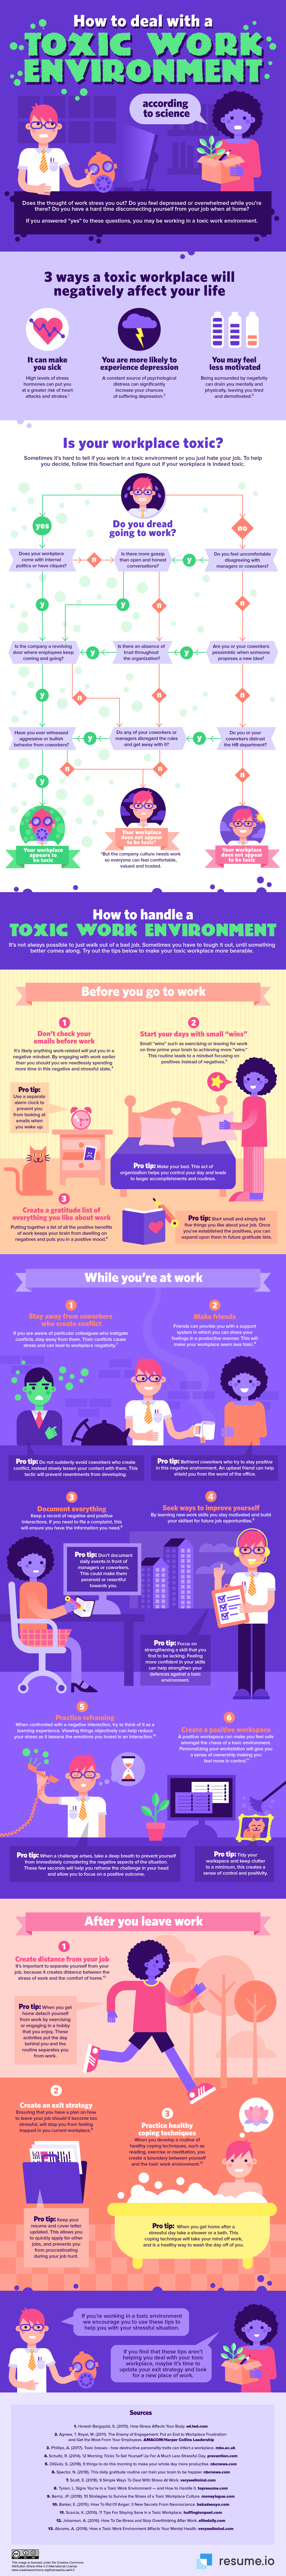 The Science of a Toxic Work Environment and How to Handle It - Infographic